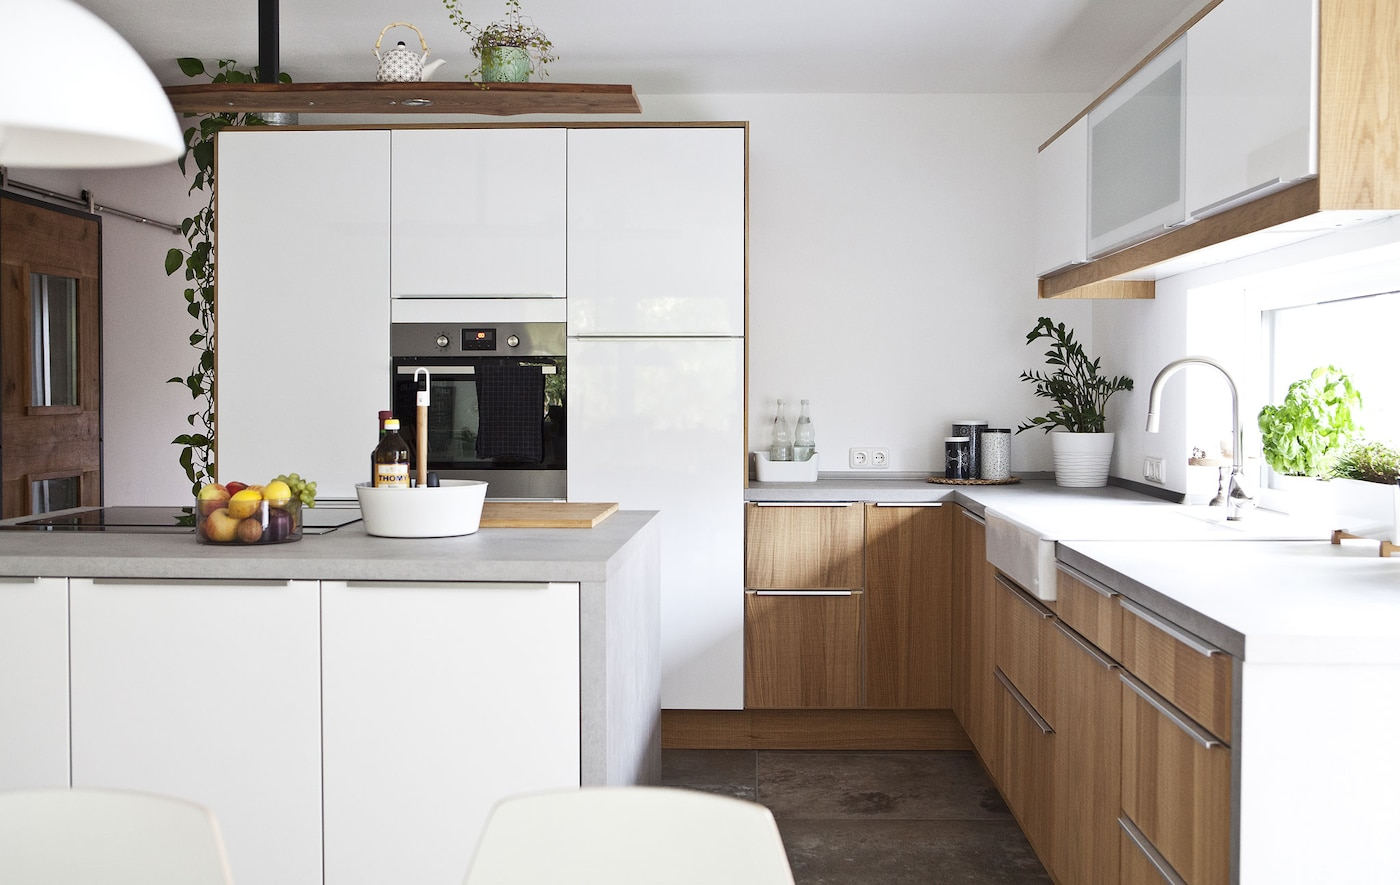 high gloss kitchen design ideas et godt organisert moderne kj 248 kken i landlig stil ikea 7046